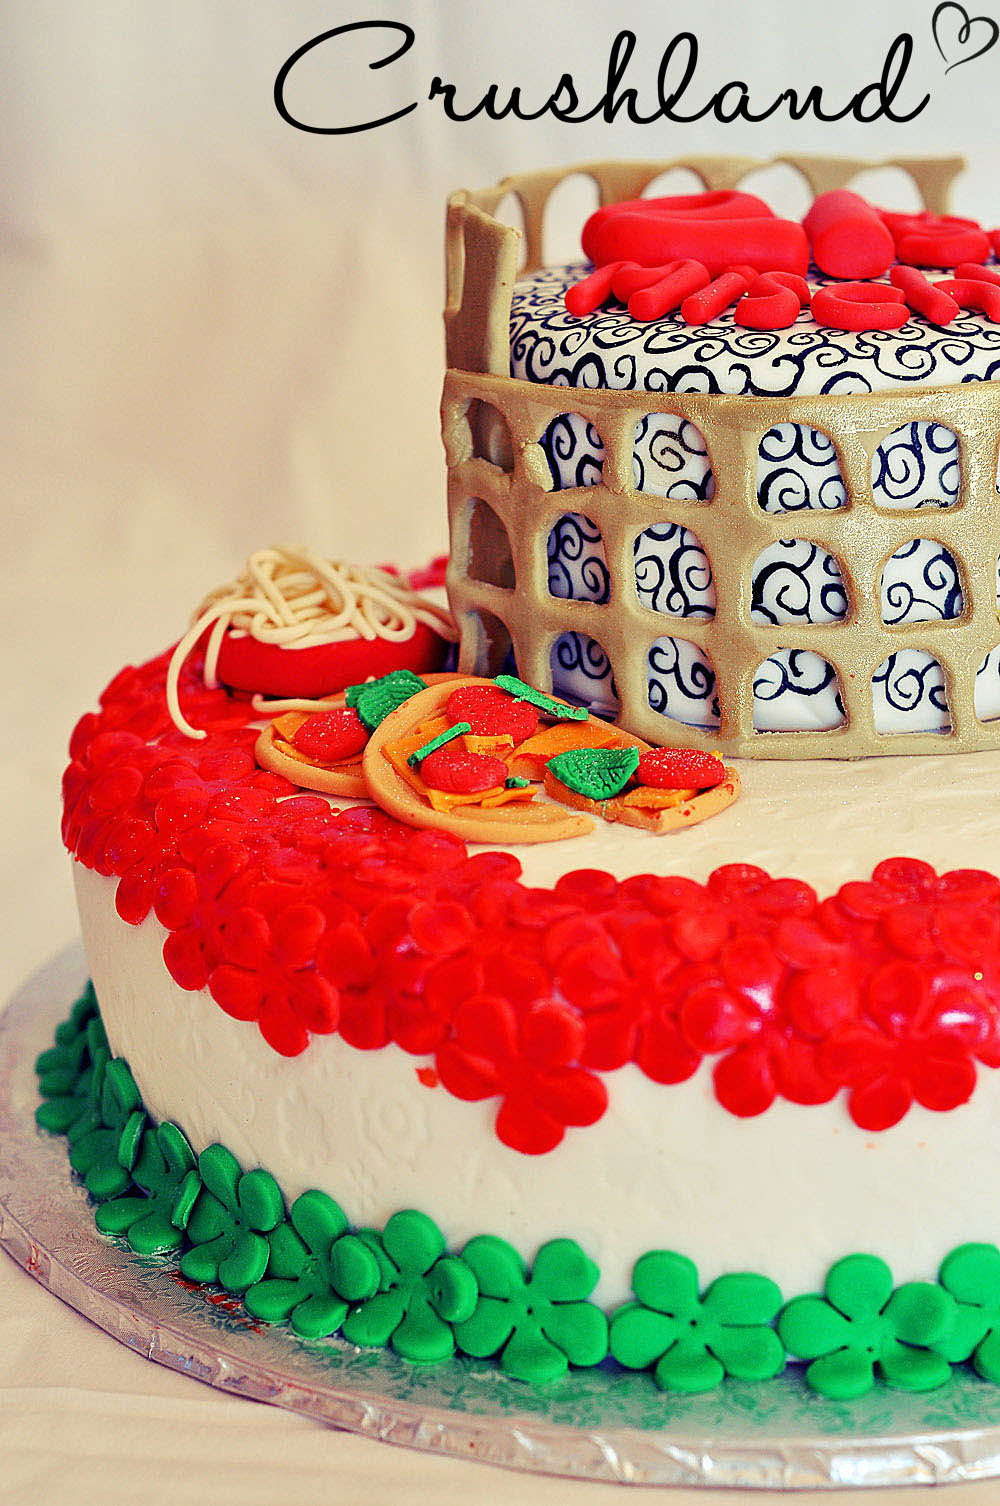 Cake Decorated Like Pizza and Coliseum